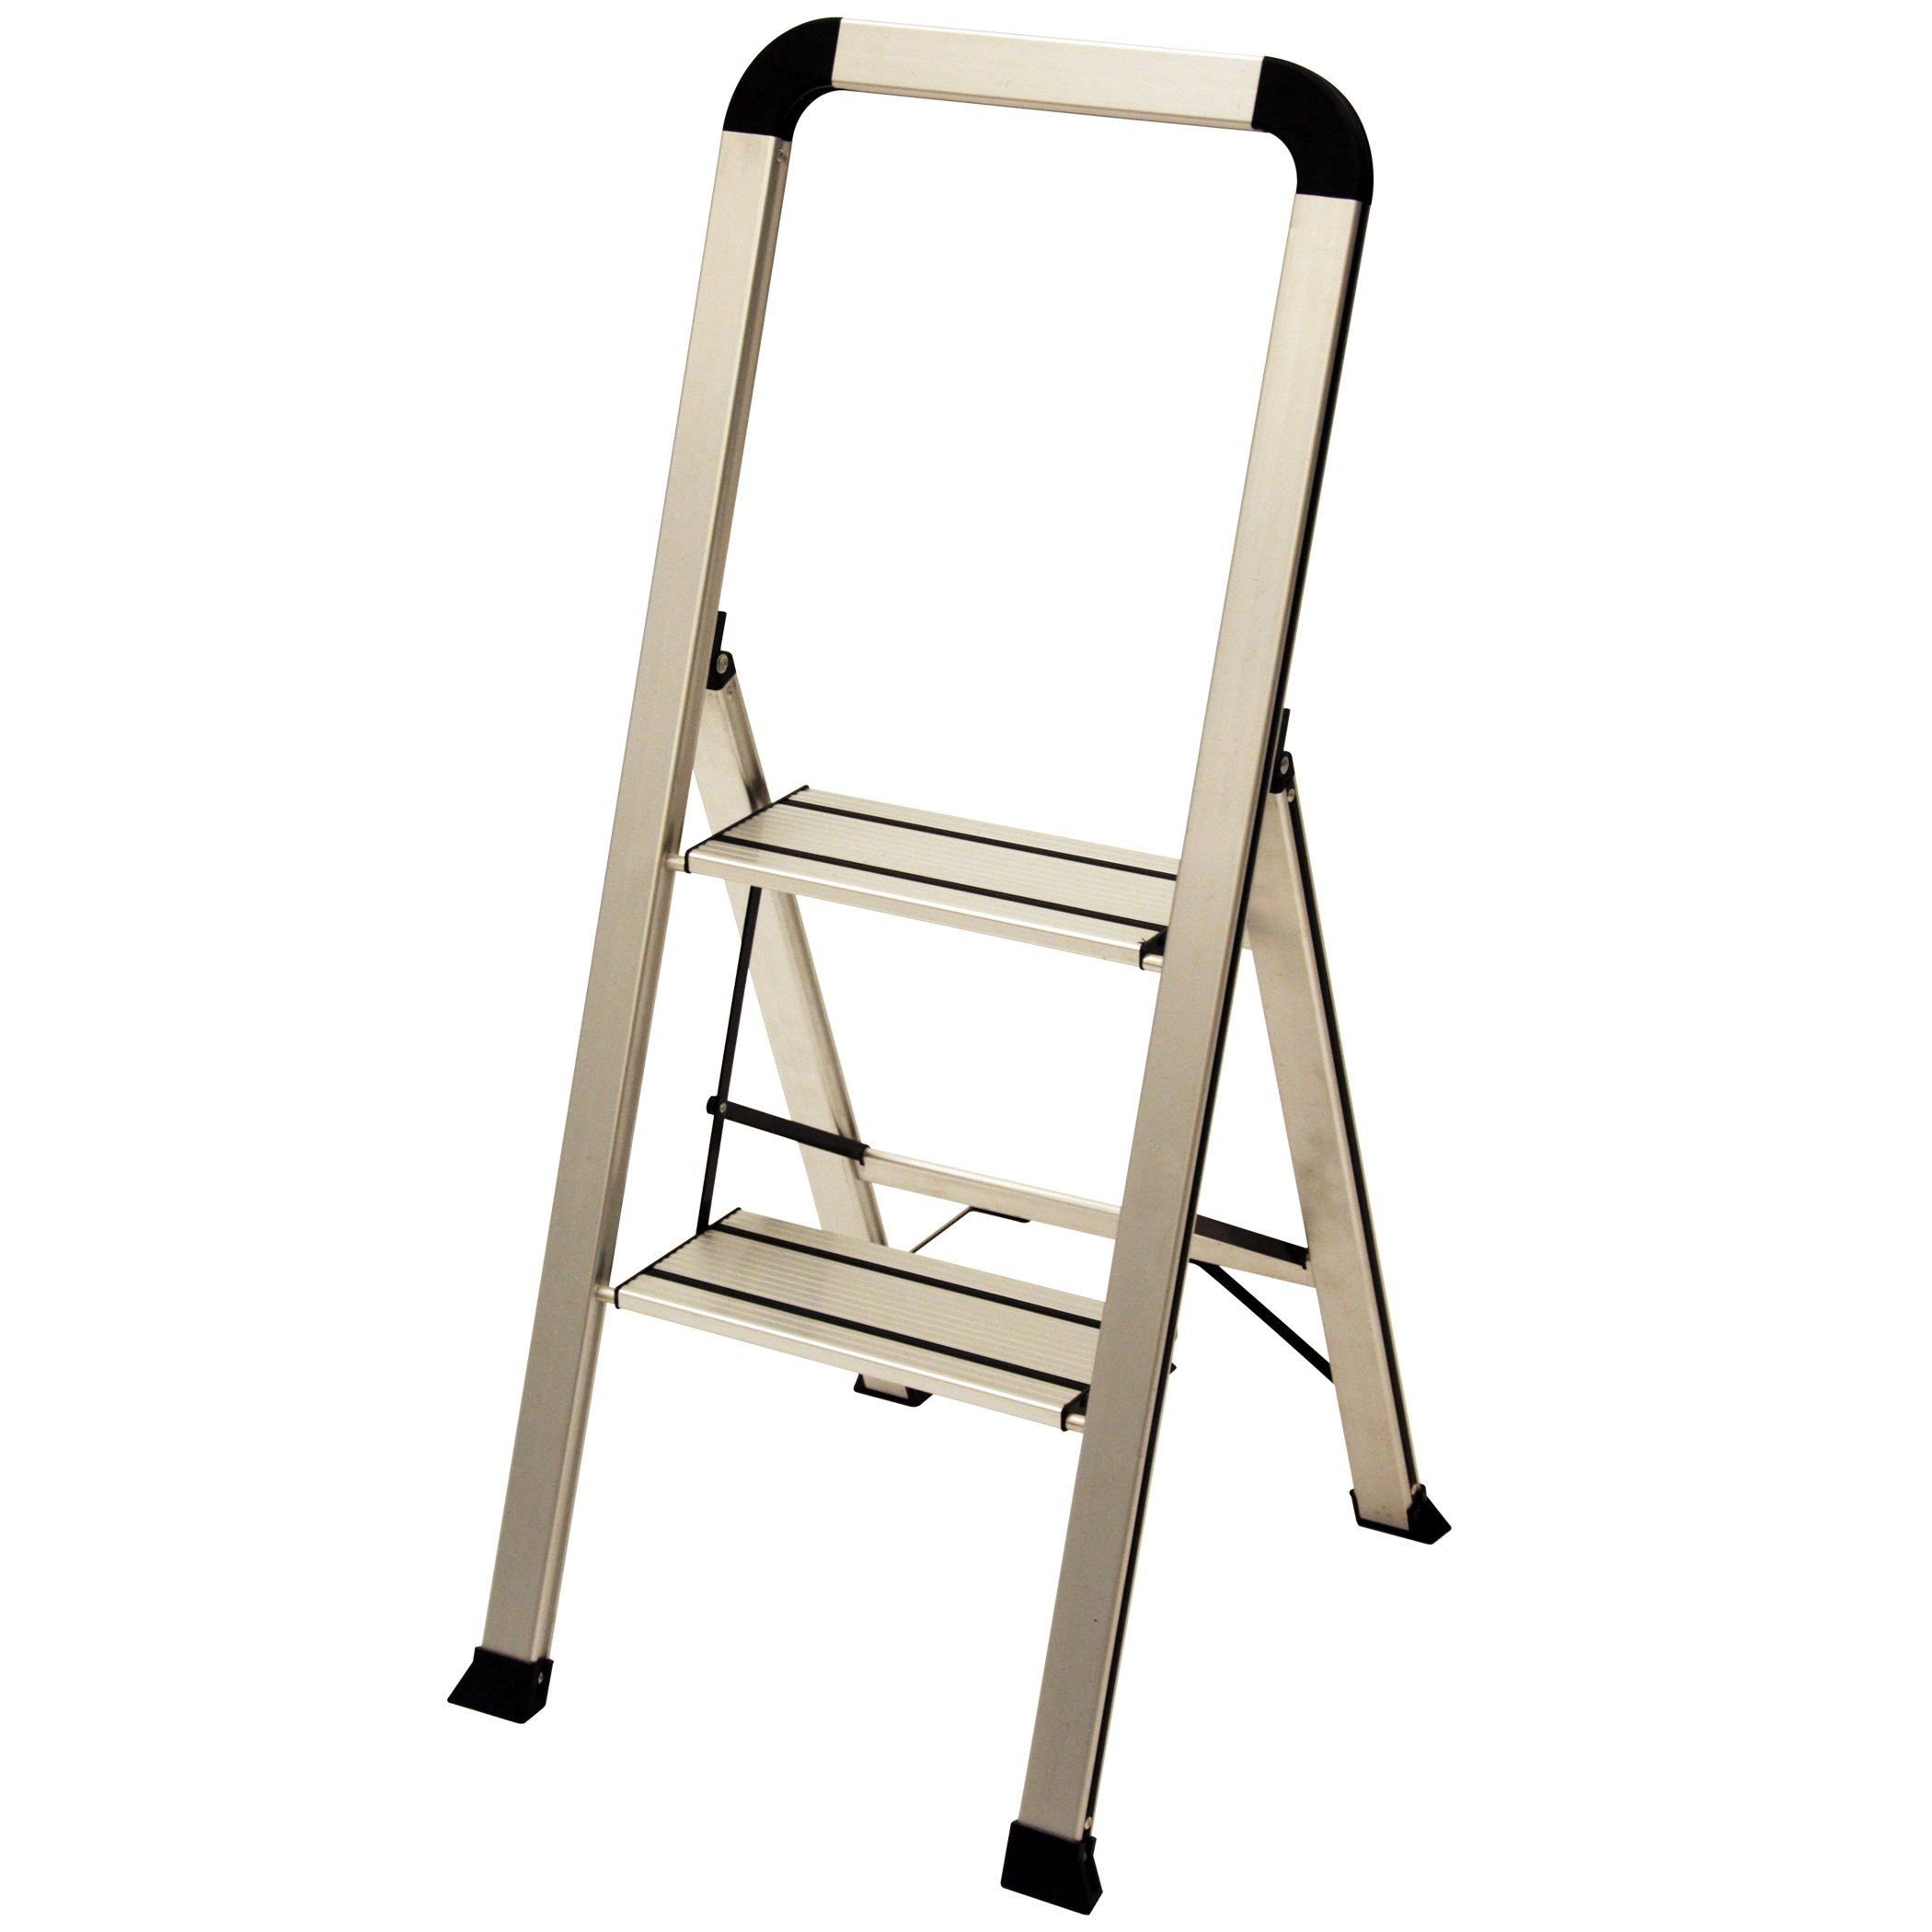 Ascent ADS2-001-SL Series Aluminum 2 Designer Step Stool, Silver by Ascent